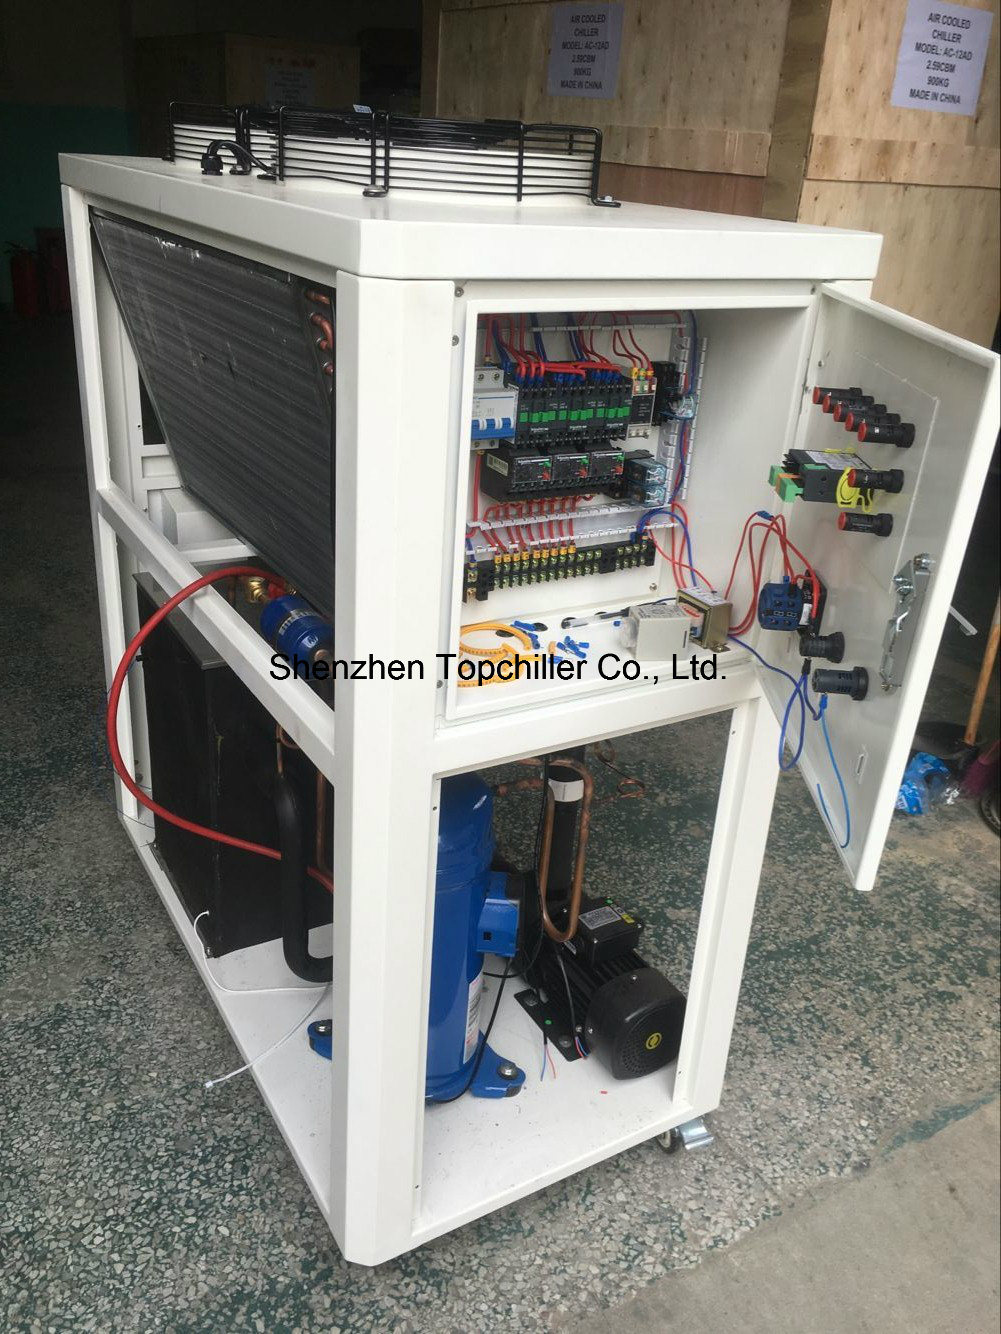 12kw/18kw Portable Air Cooled Packaged Water Chiller with Danfoss Scroll Compressor